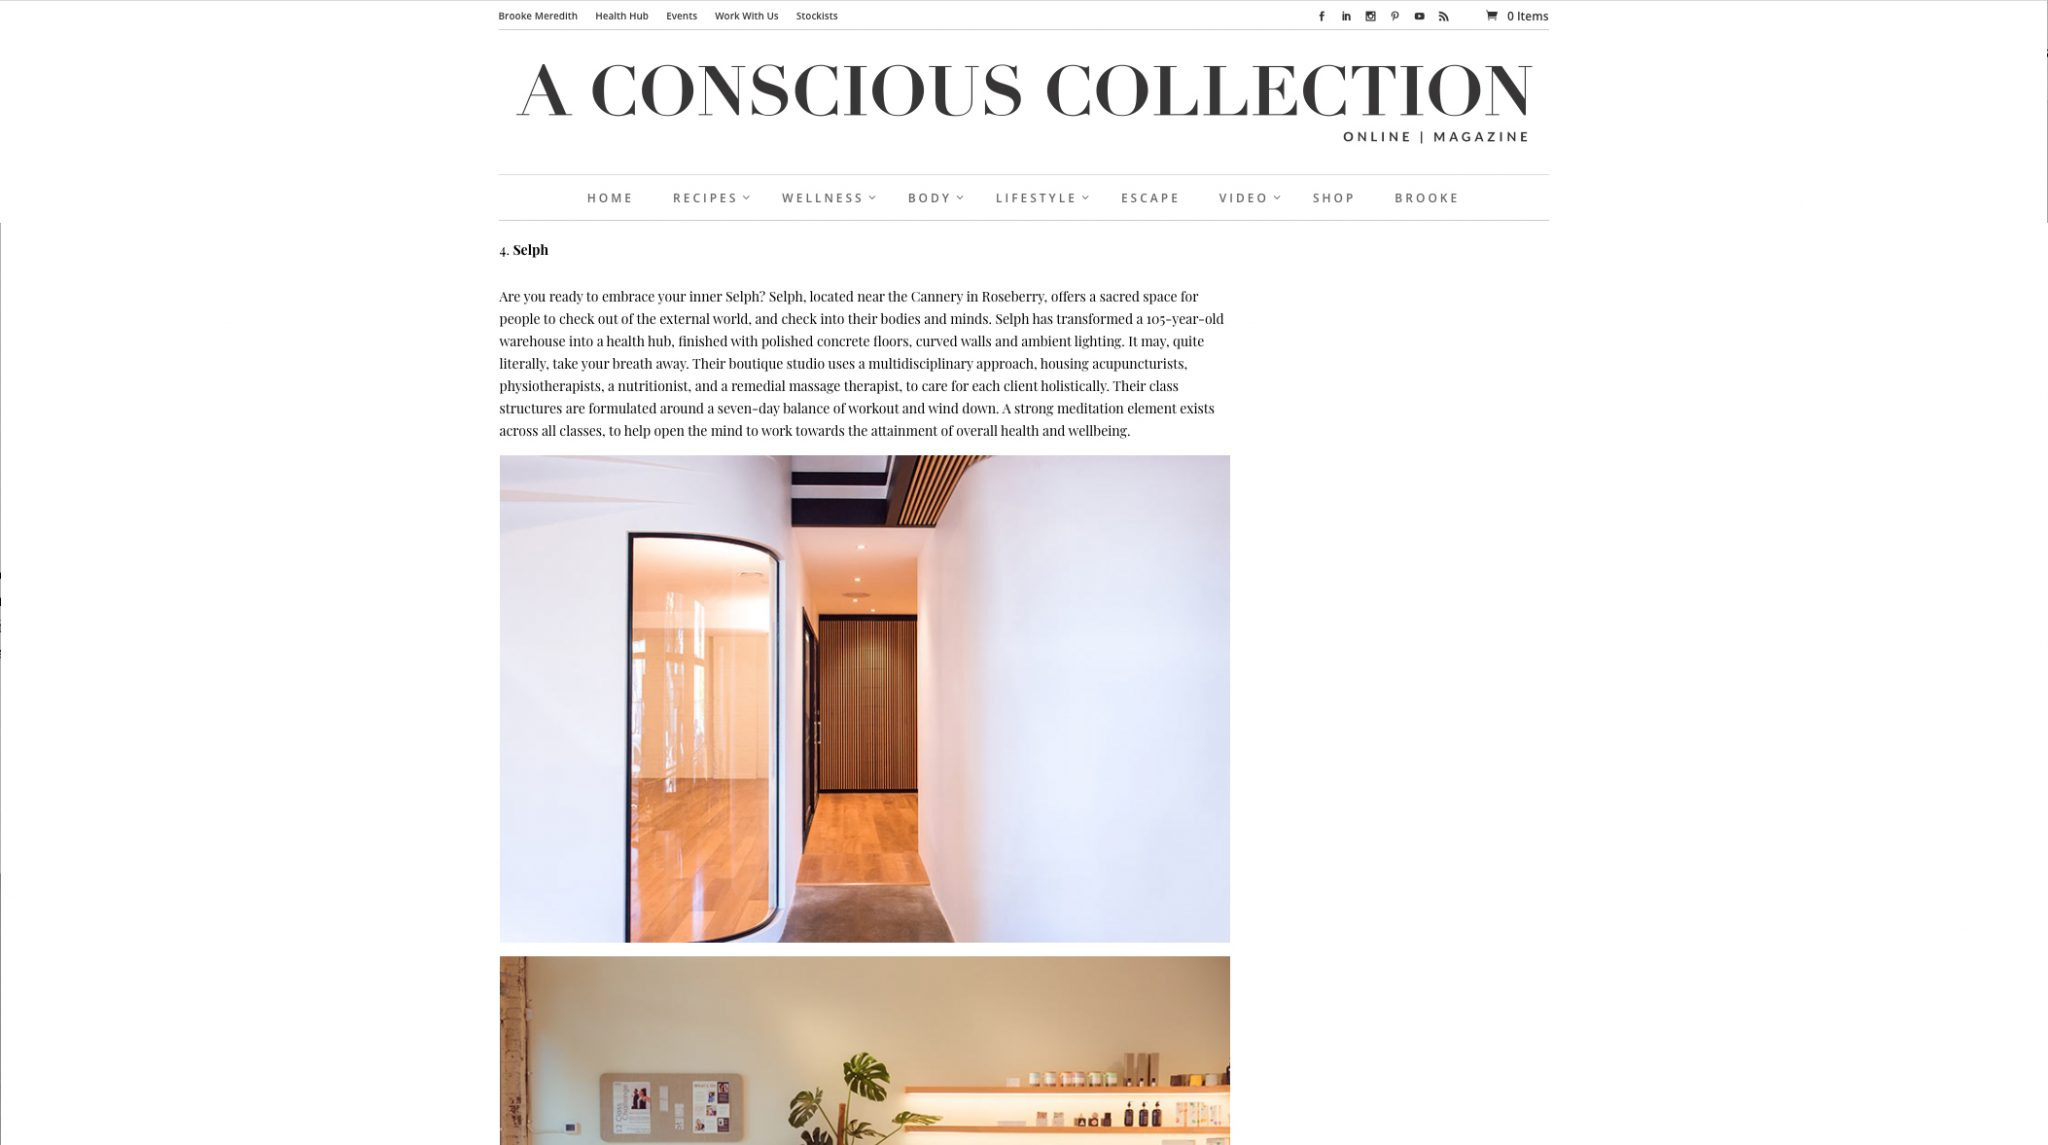 8 OF THE MOST BEAUTIFUL WORKOUT STUDIOS IN SYDNEY - a conscious collection - Selph health studios